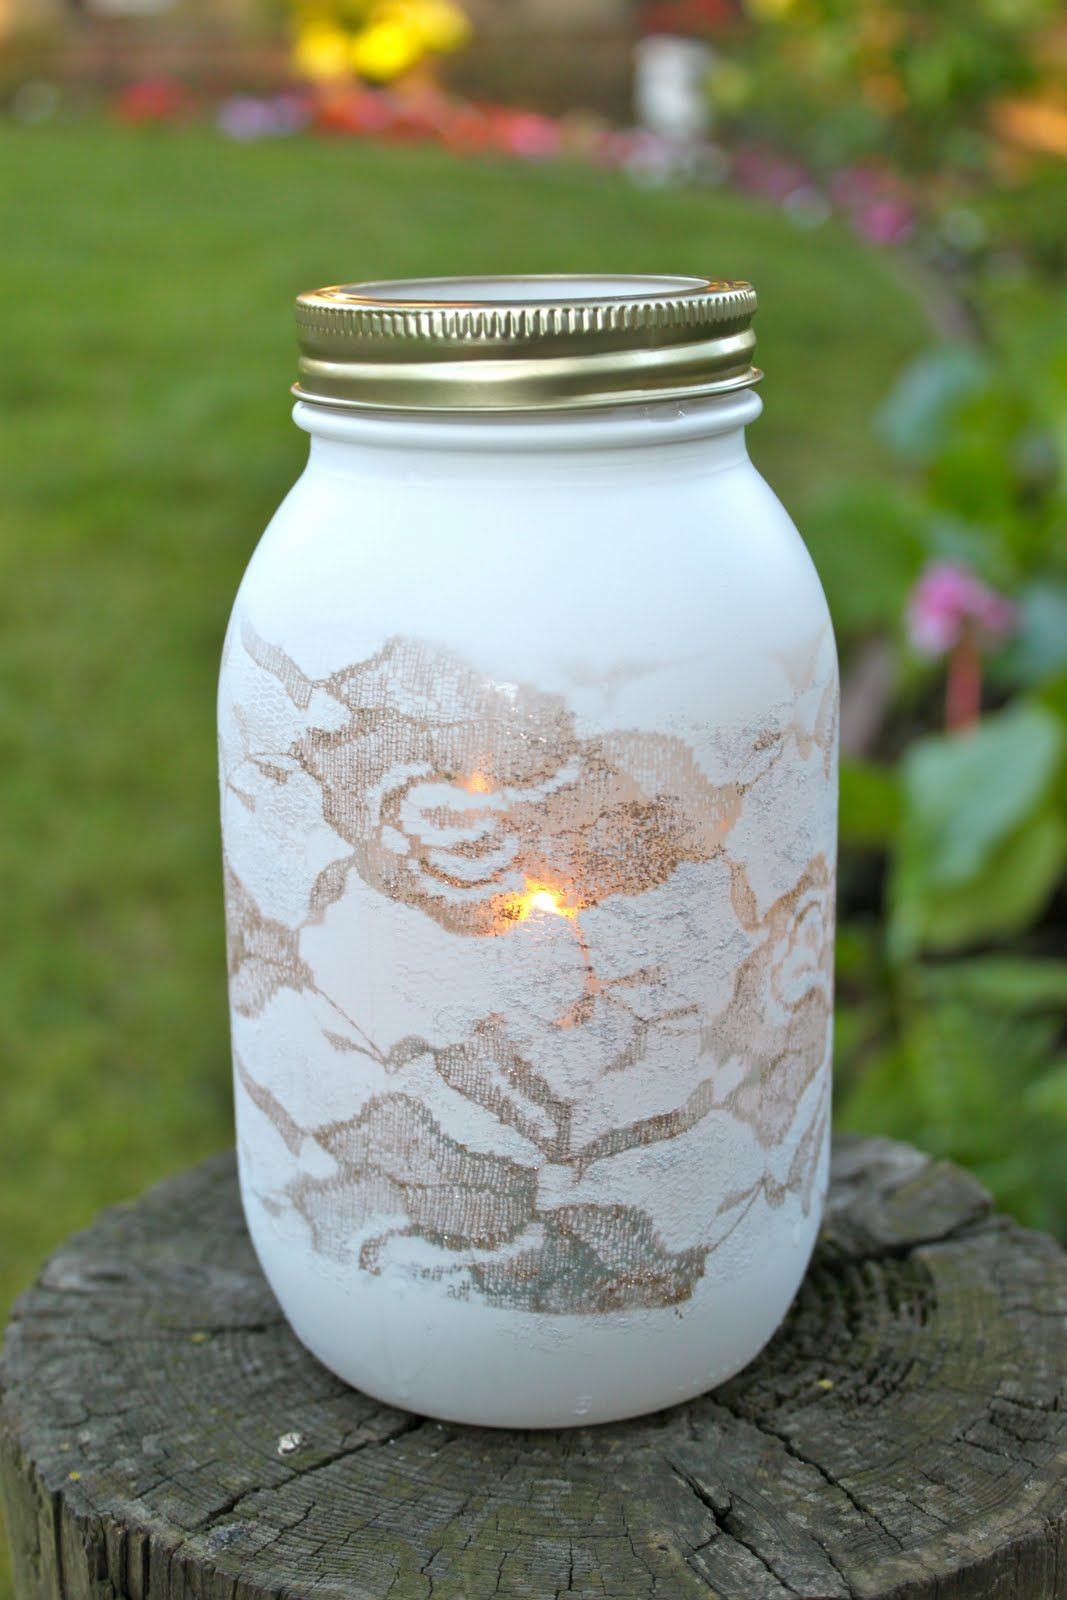 Ordinary Mason Jar Diy Part - 5: Mason+Jar+Crafts | DIY Mason Jar Crafts {guest Tutorial}